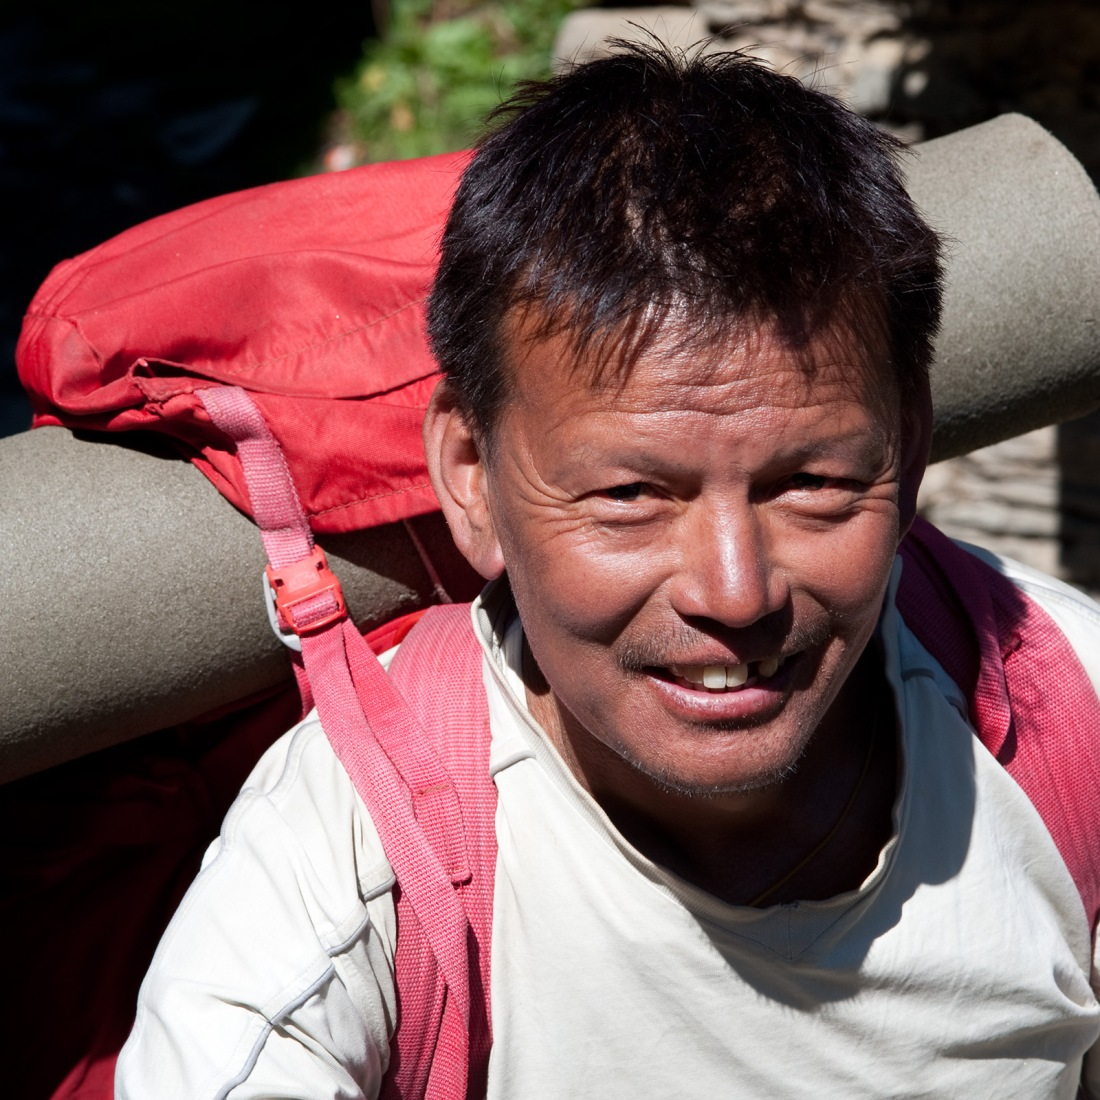 Surosh, our cook  on the way to Rees, Uttarakhand, India. Trek Day 21